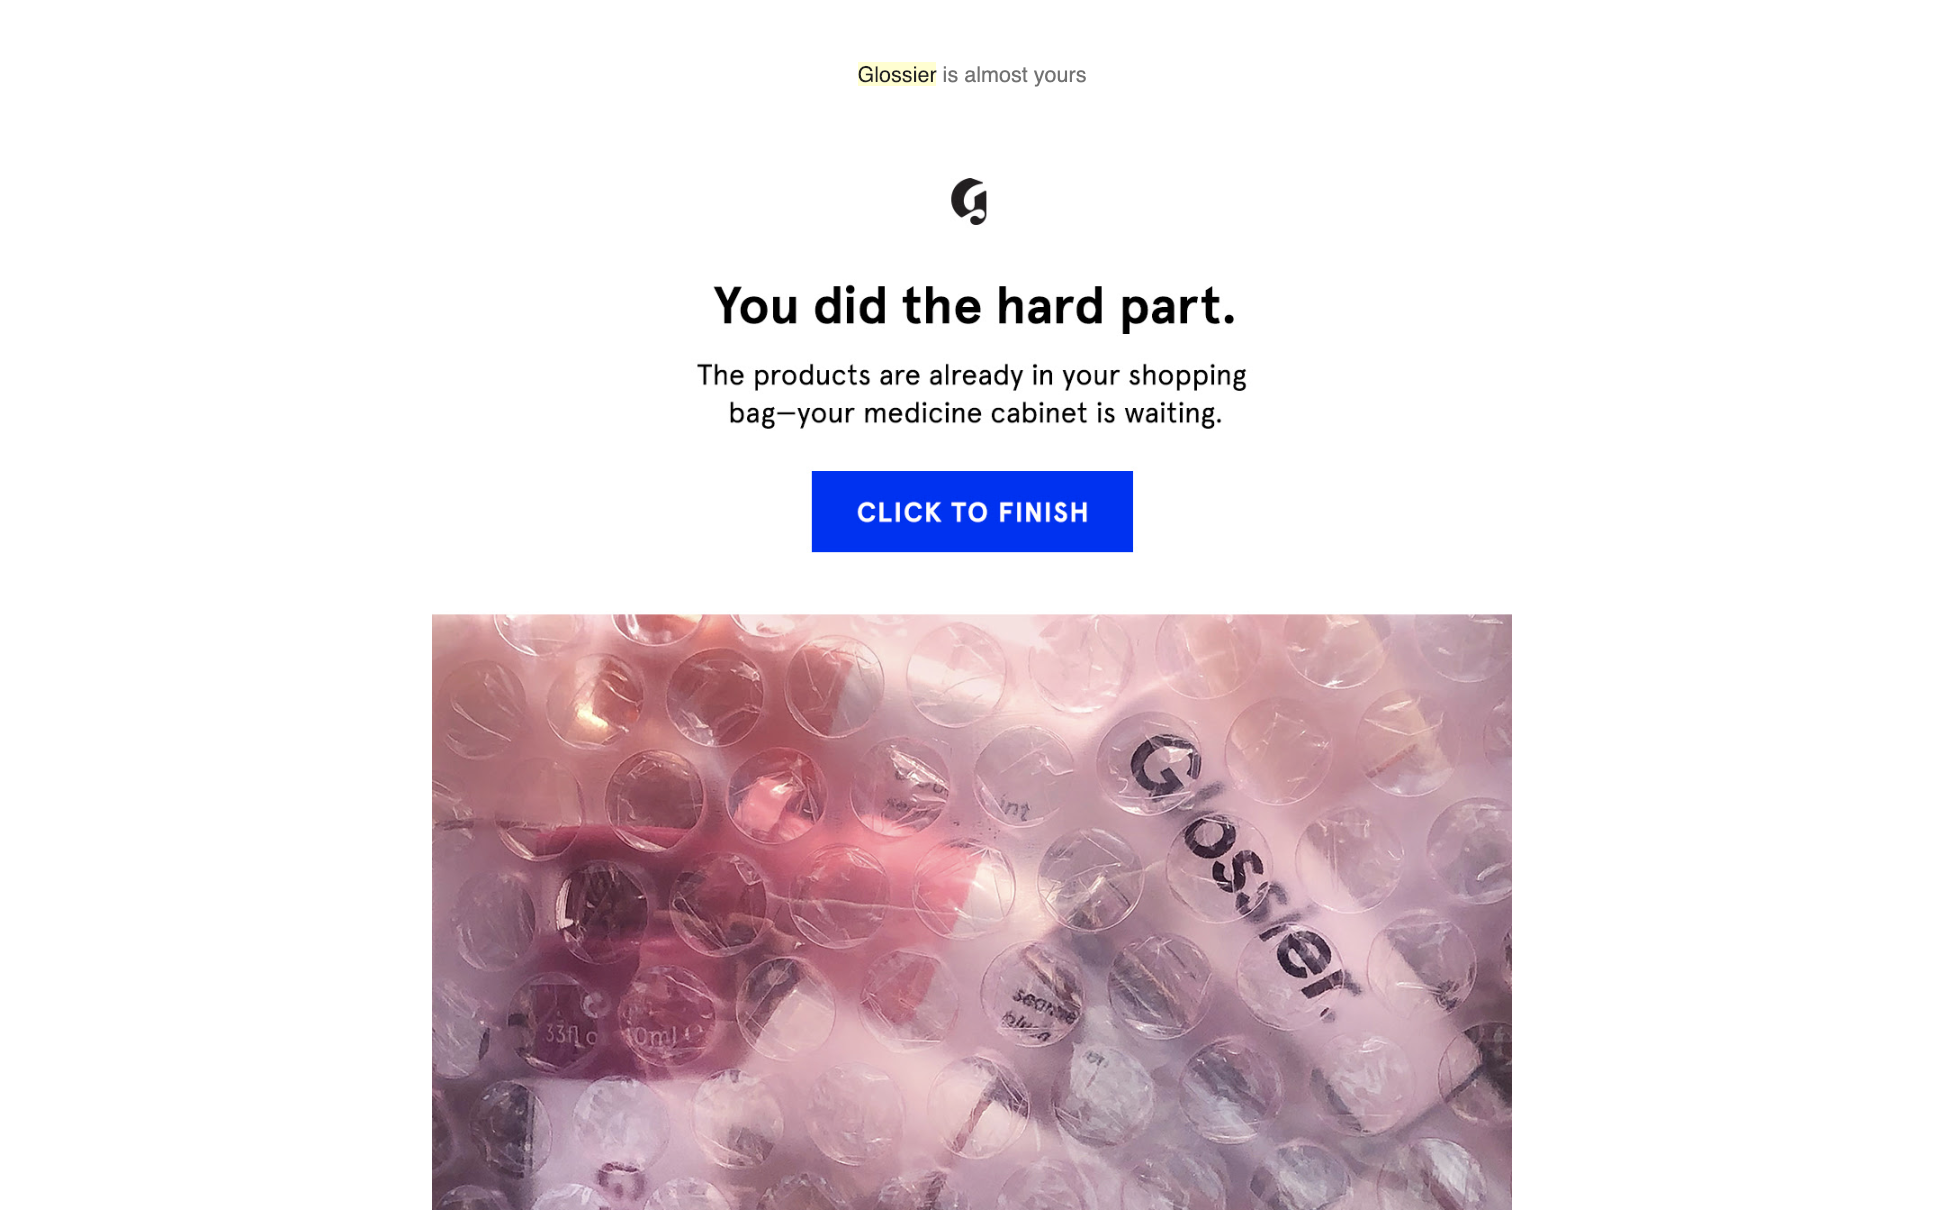 glossier-second-abandoned-cart-email-you-did-the-hard-part